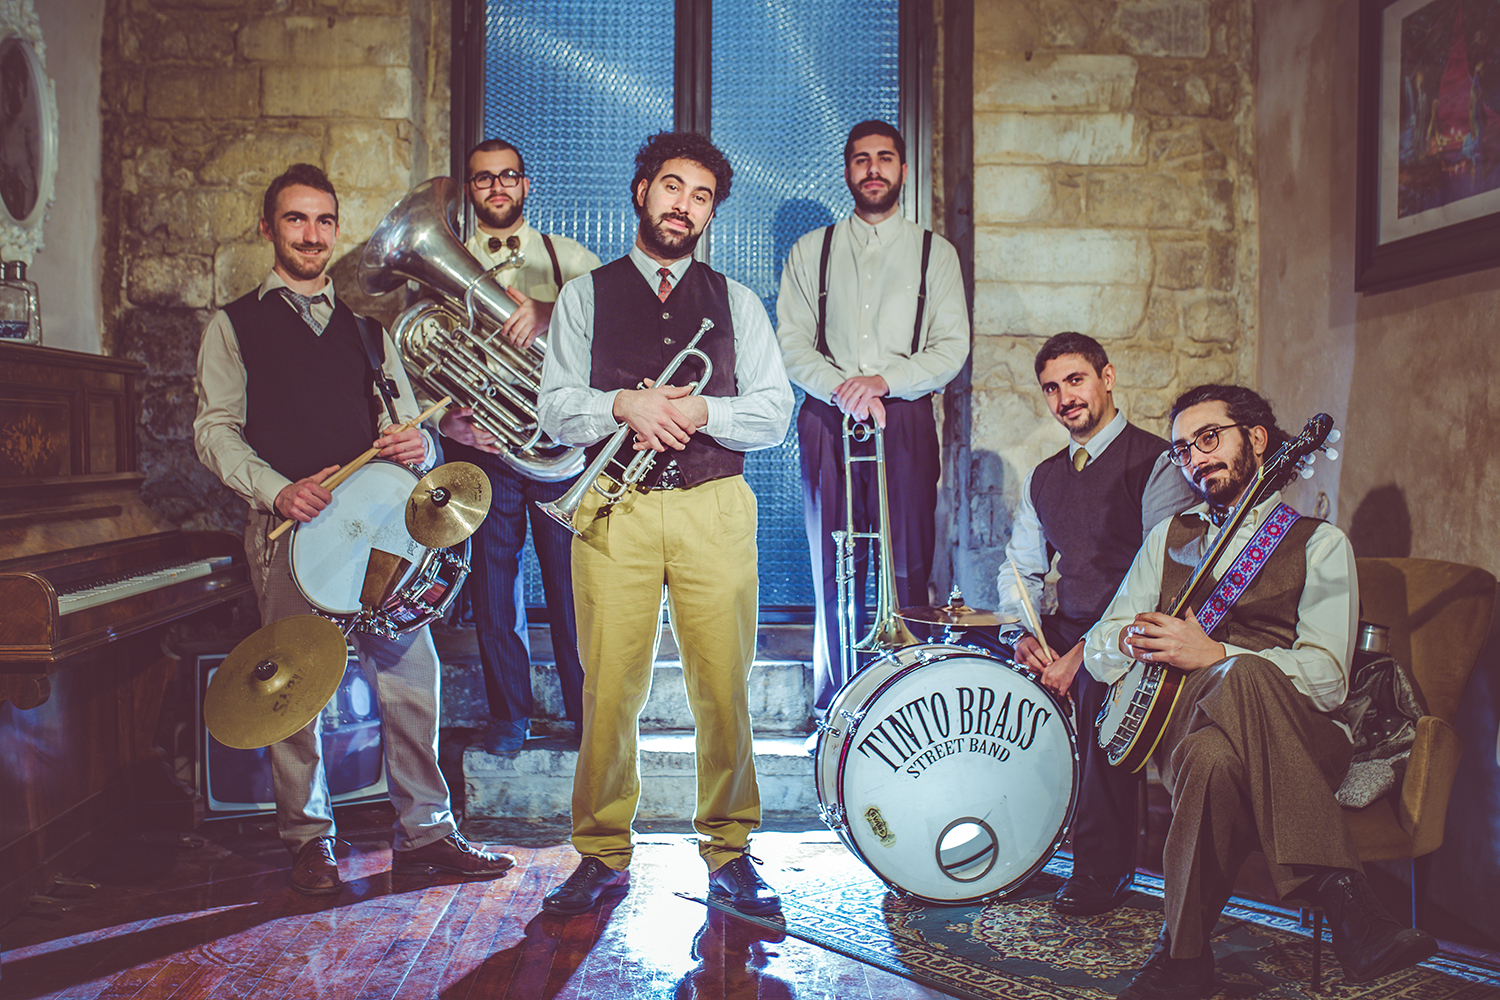 TINTO BRASS STREET BAND picture